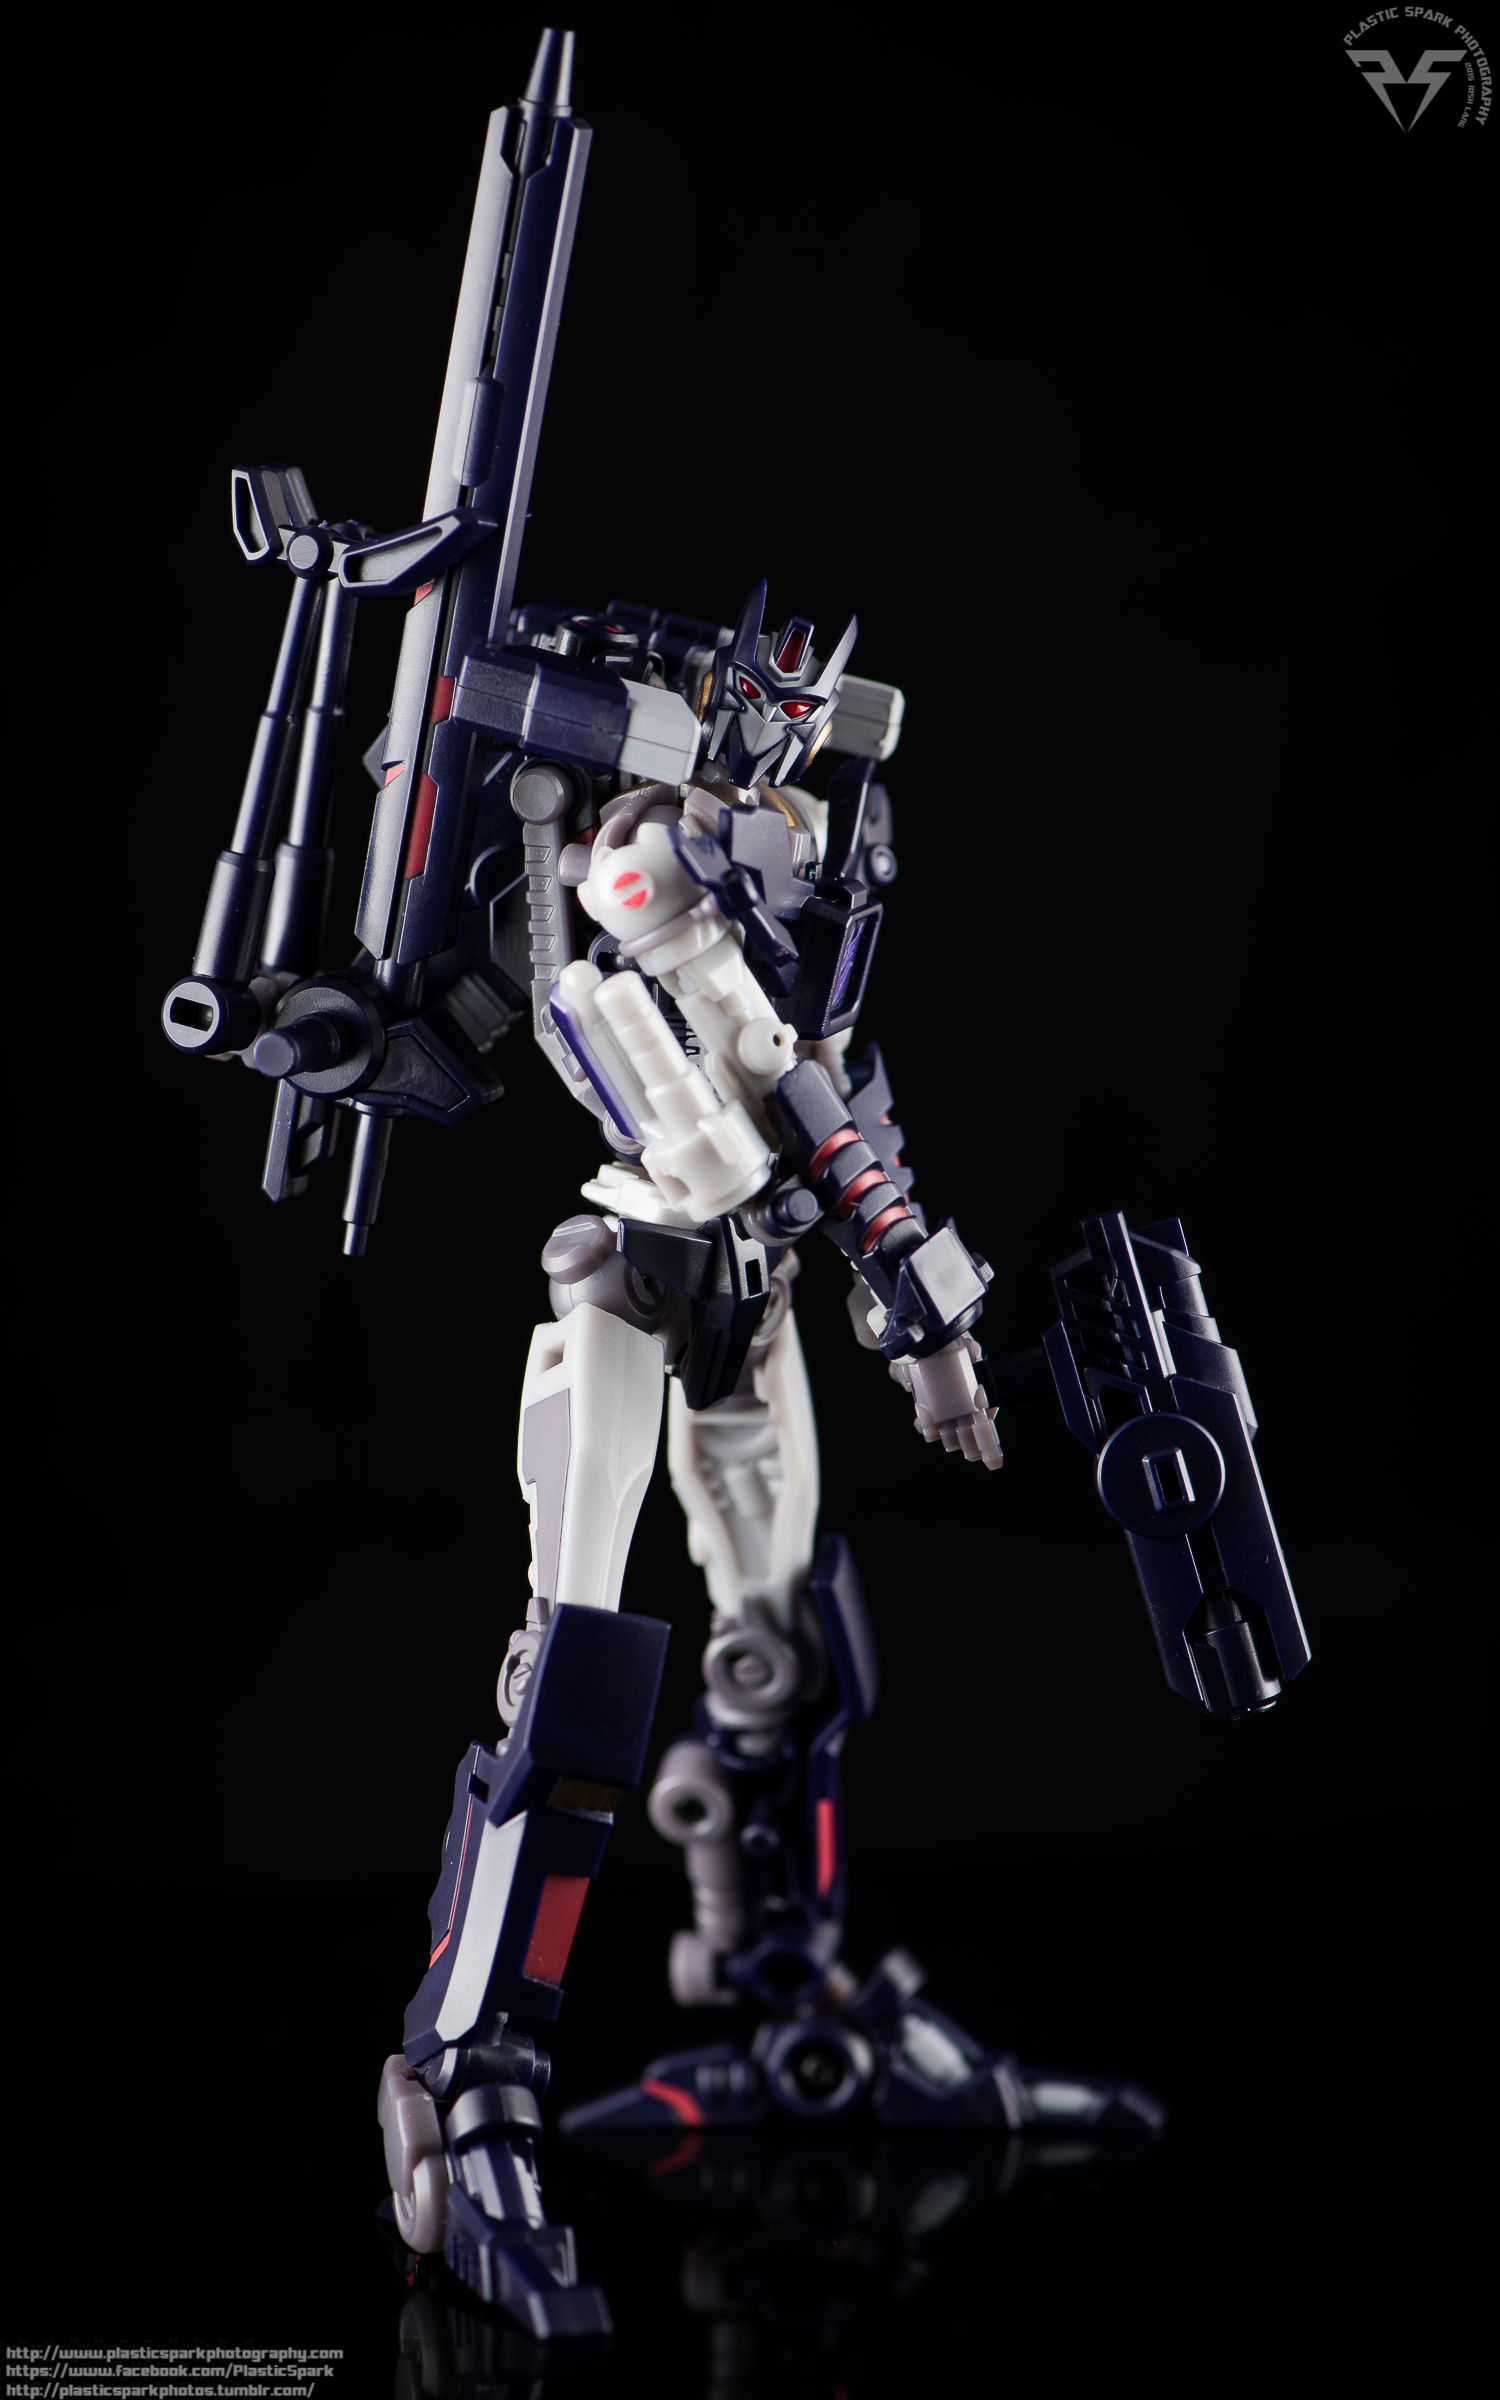 Mastermind-Creations-Cynicus-(8-of-21).png